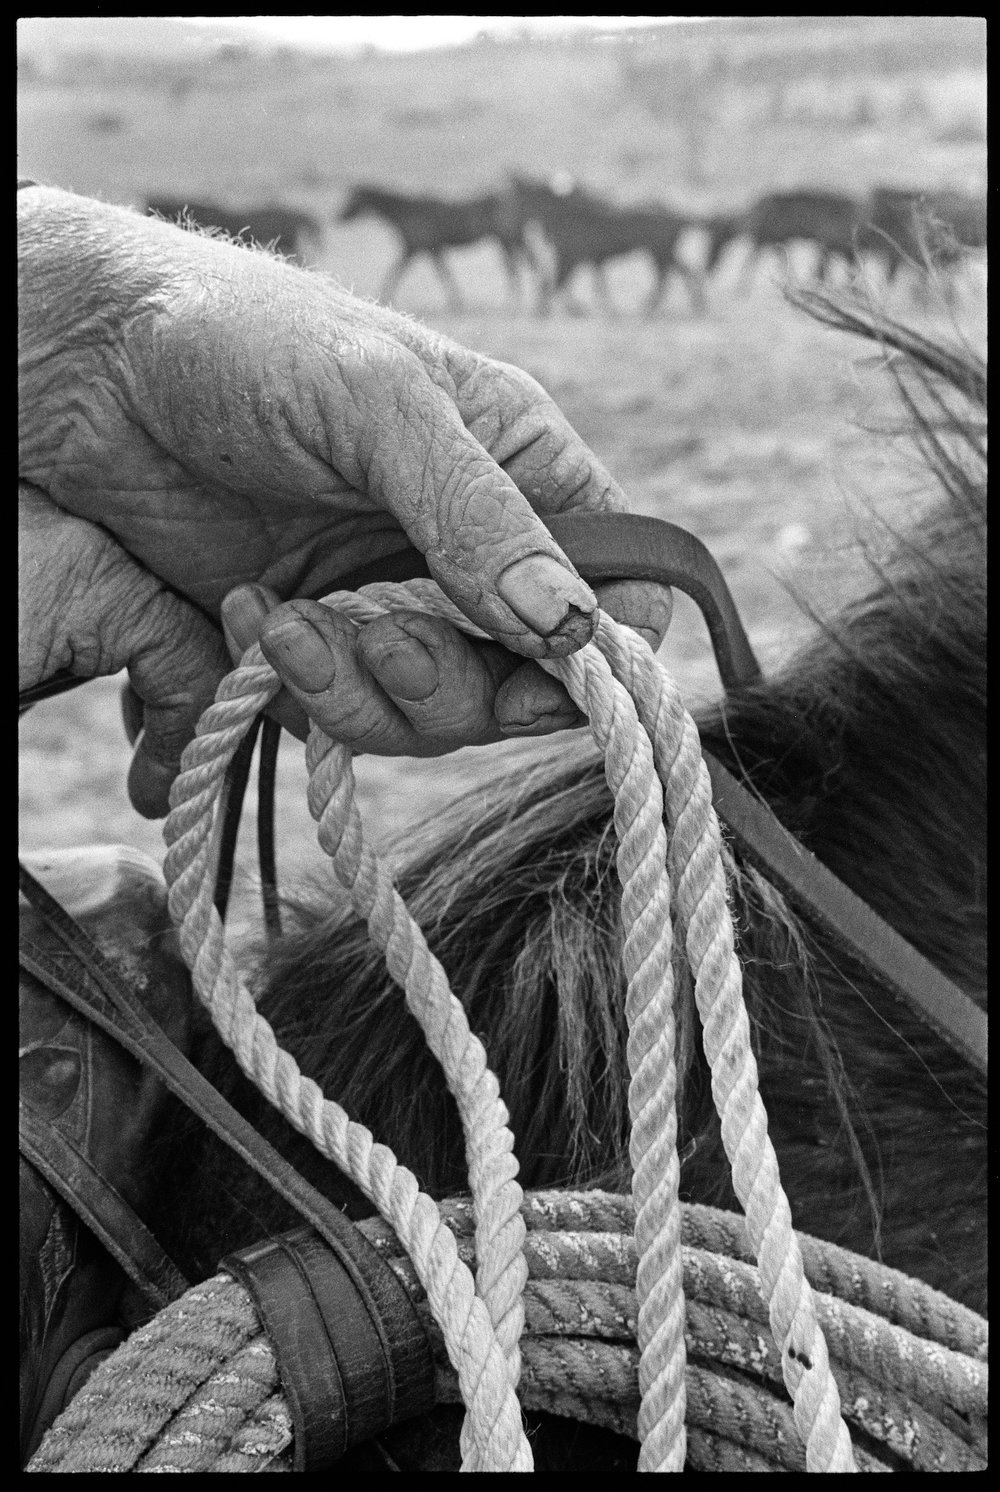 1970 RANCH FOREMAN'S HAND, near Prescott, Arizona.